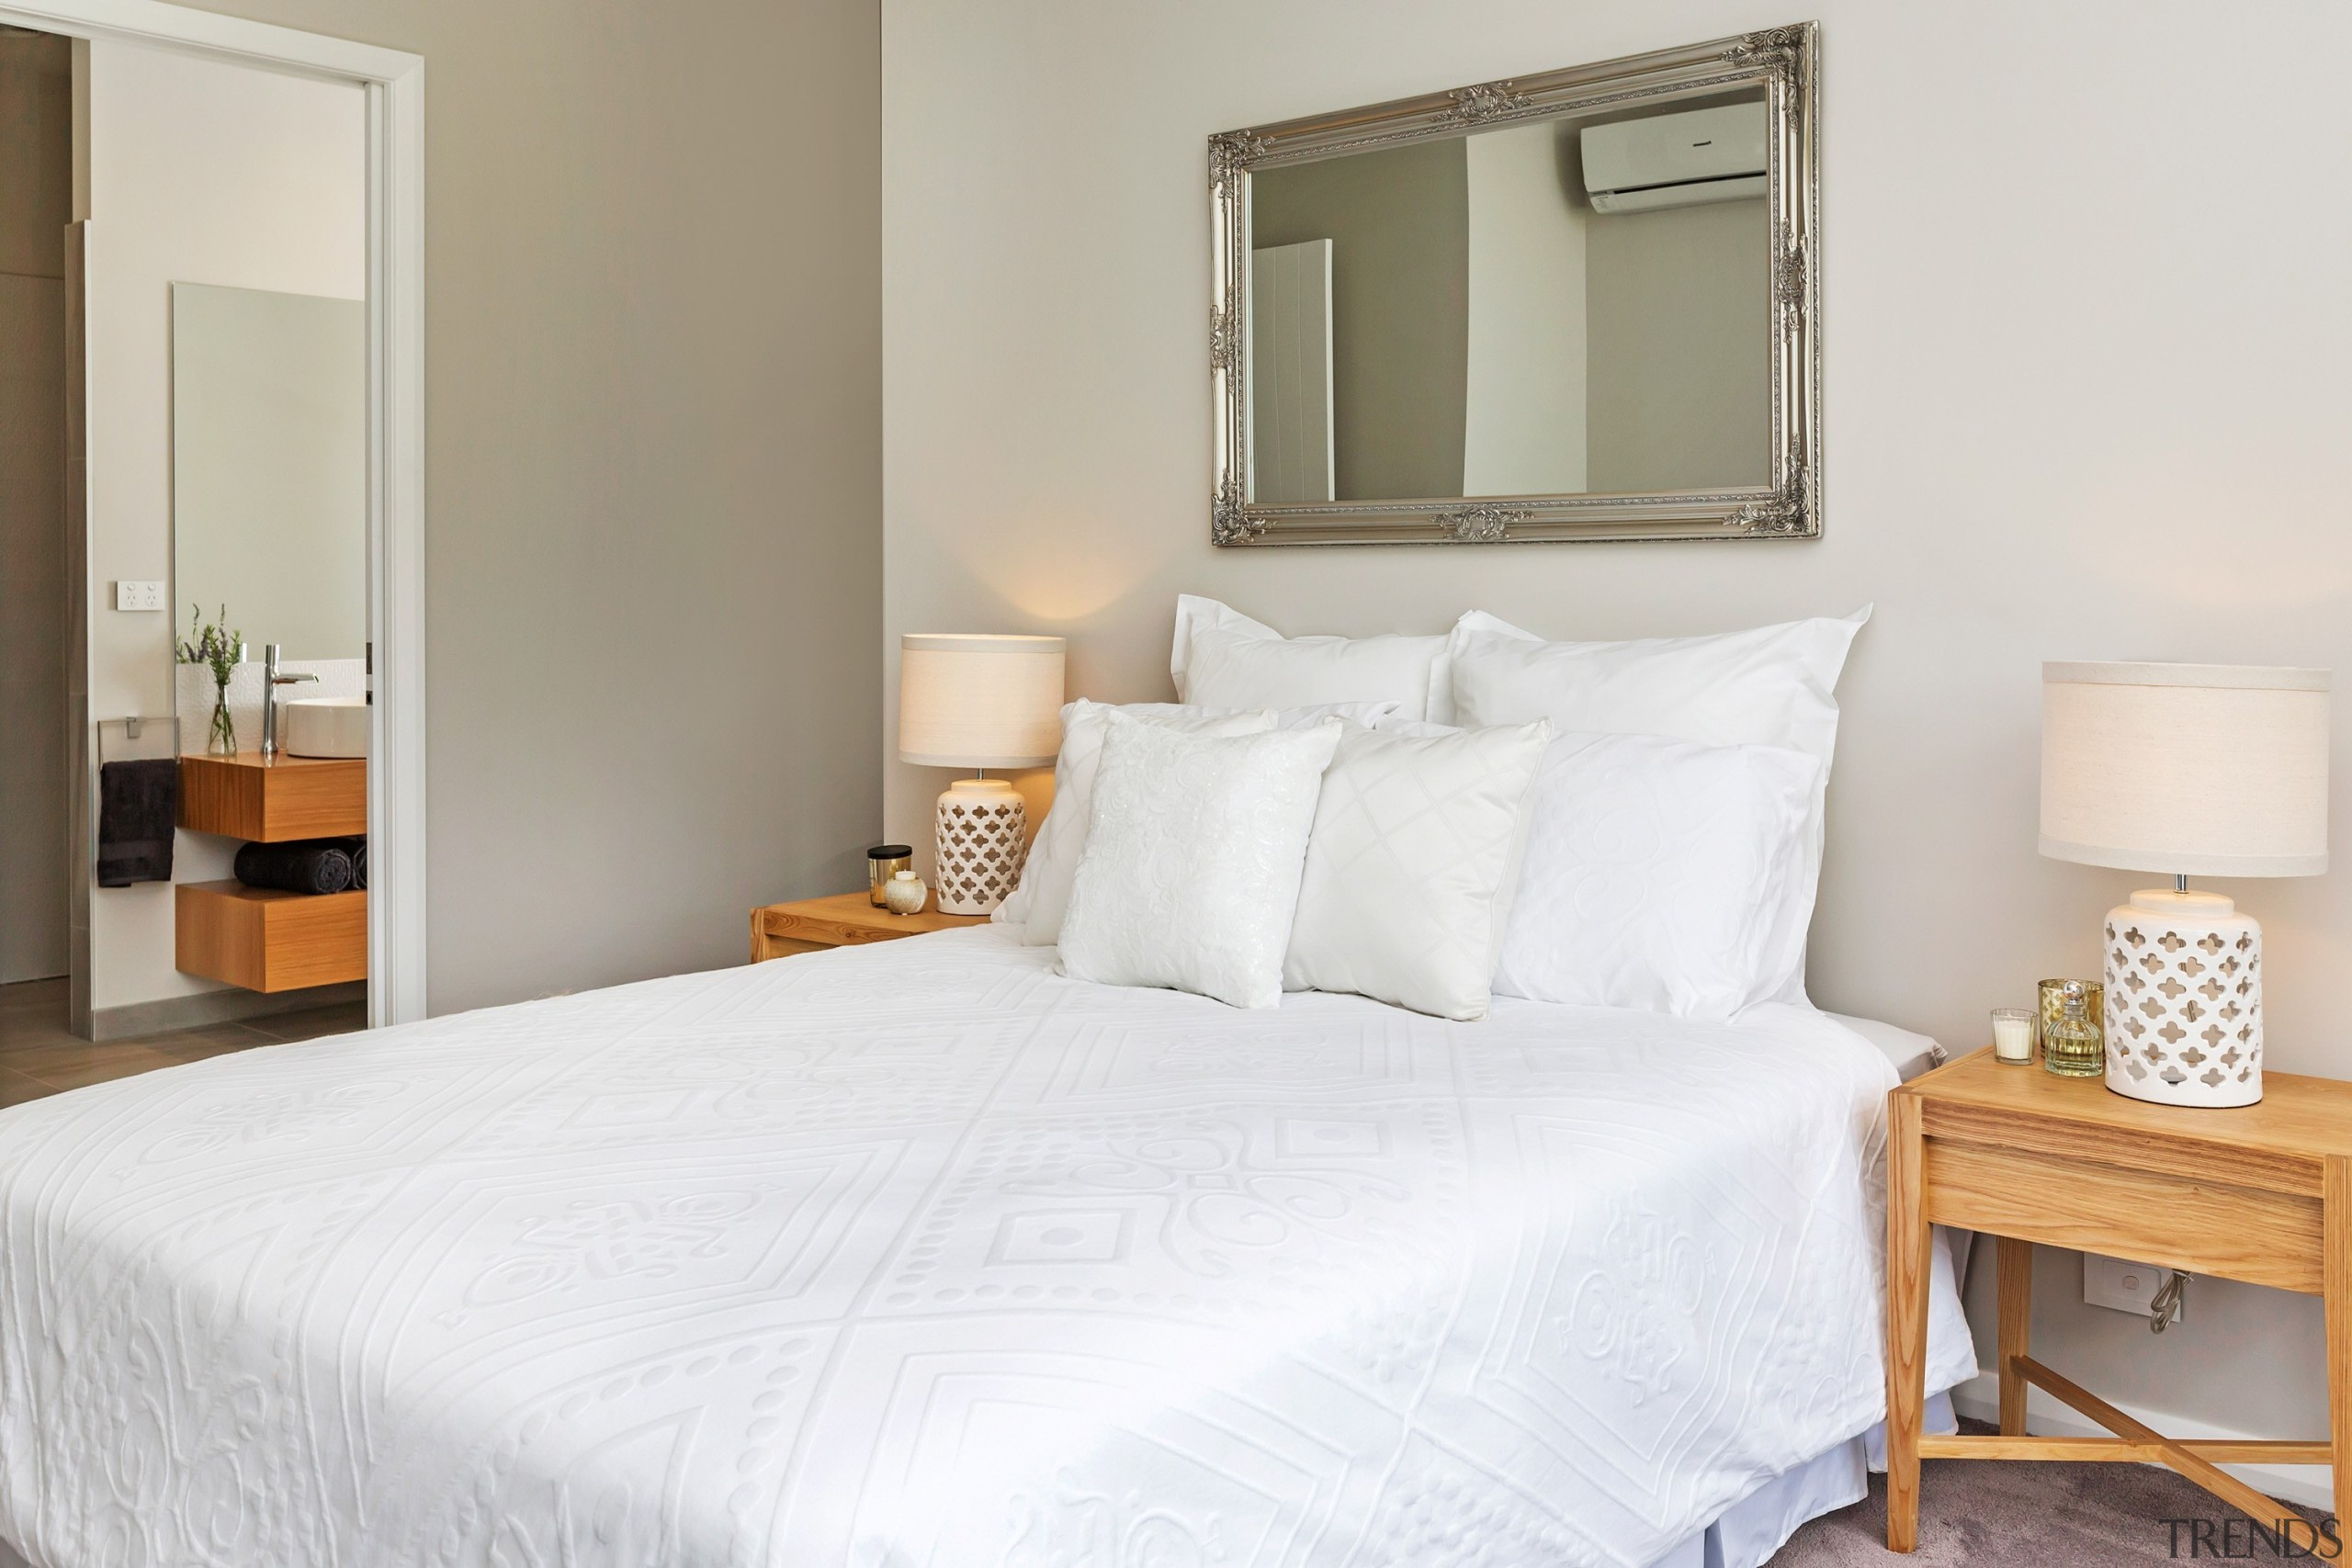 Master bedroom suite in Landmark Homes Whangarei Showhome, bed, bed frame, bed sheet, bedroom, home, interior design, real estate, room, suite, gray